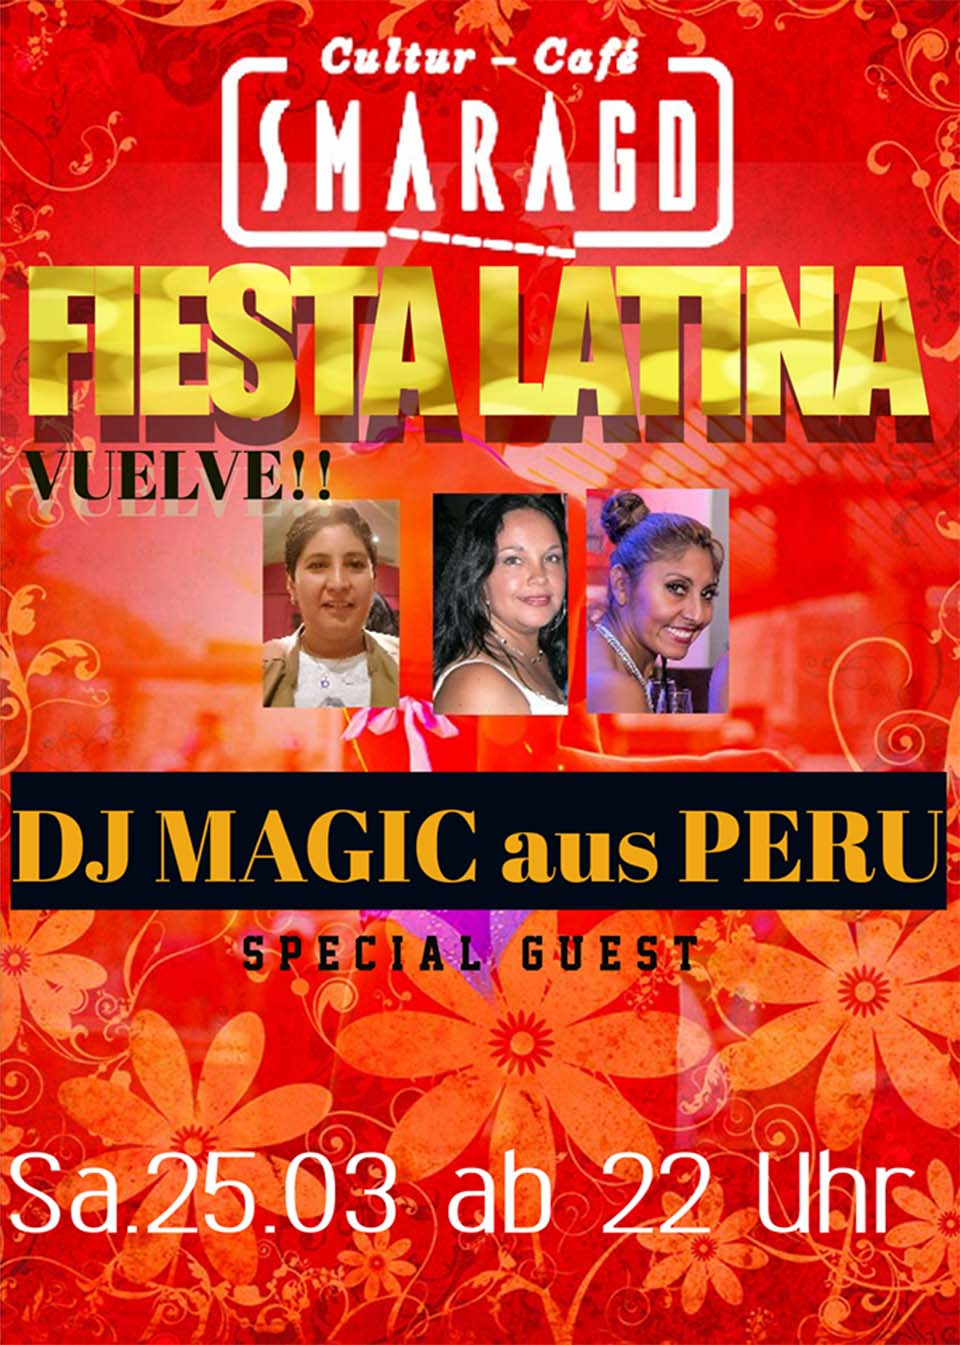 Cultur Cafe Smaragd Linz-Fiesta Latina-Dj Magic